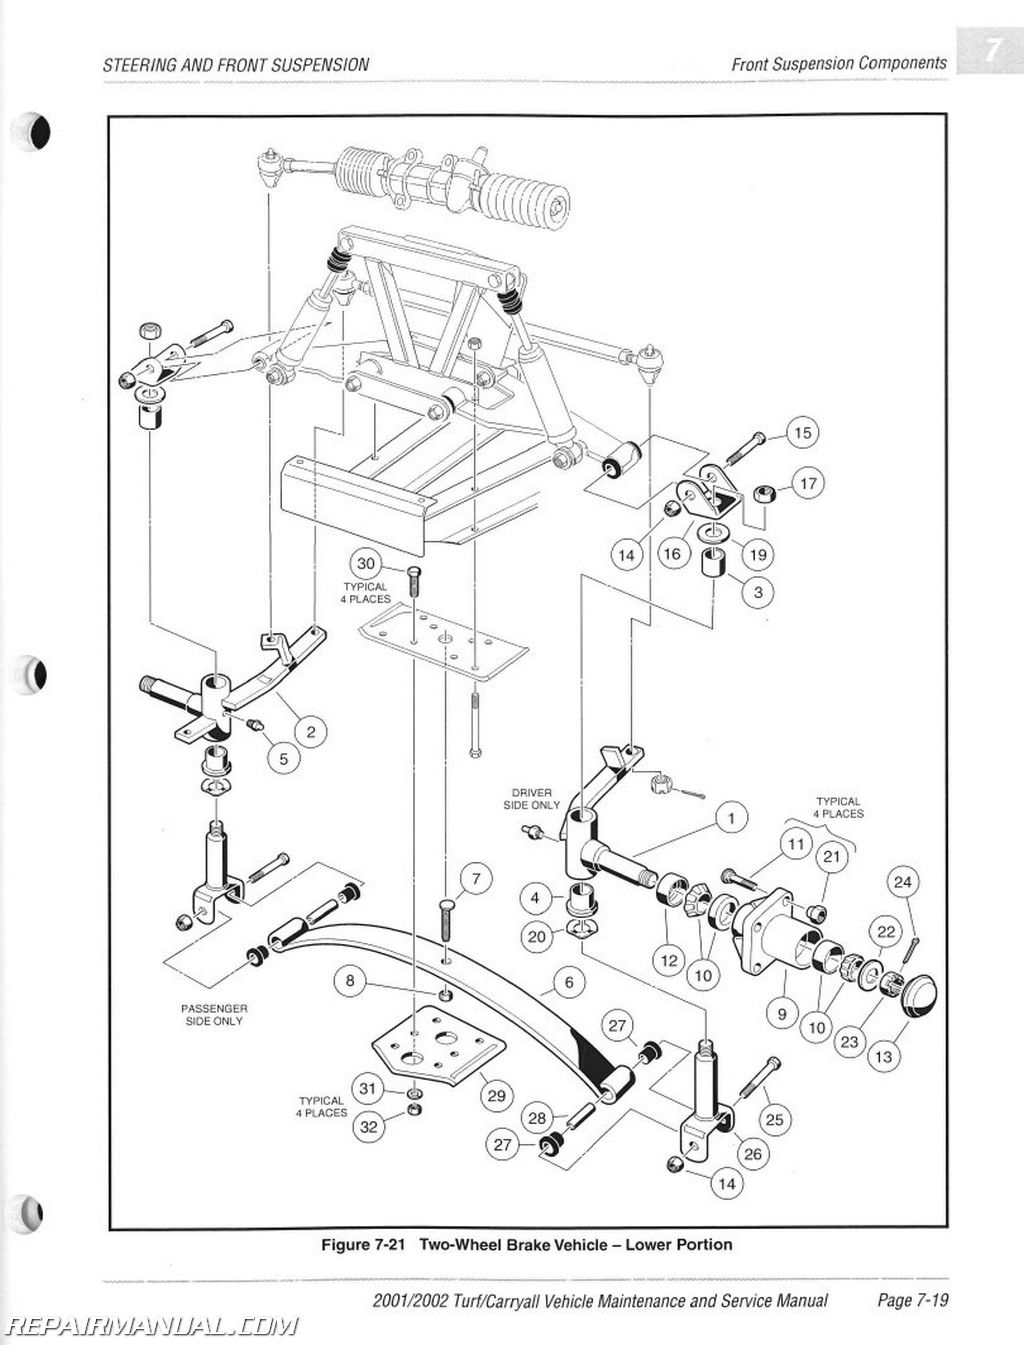 Club Car Turf 2 Parts Diagram Layout Wiring Diagrams Carryall 1 6 Cushman Manual